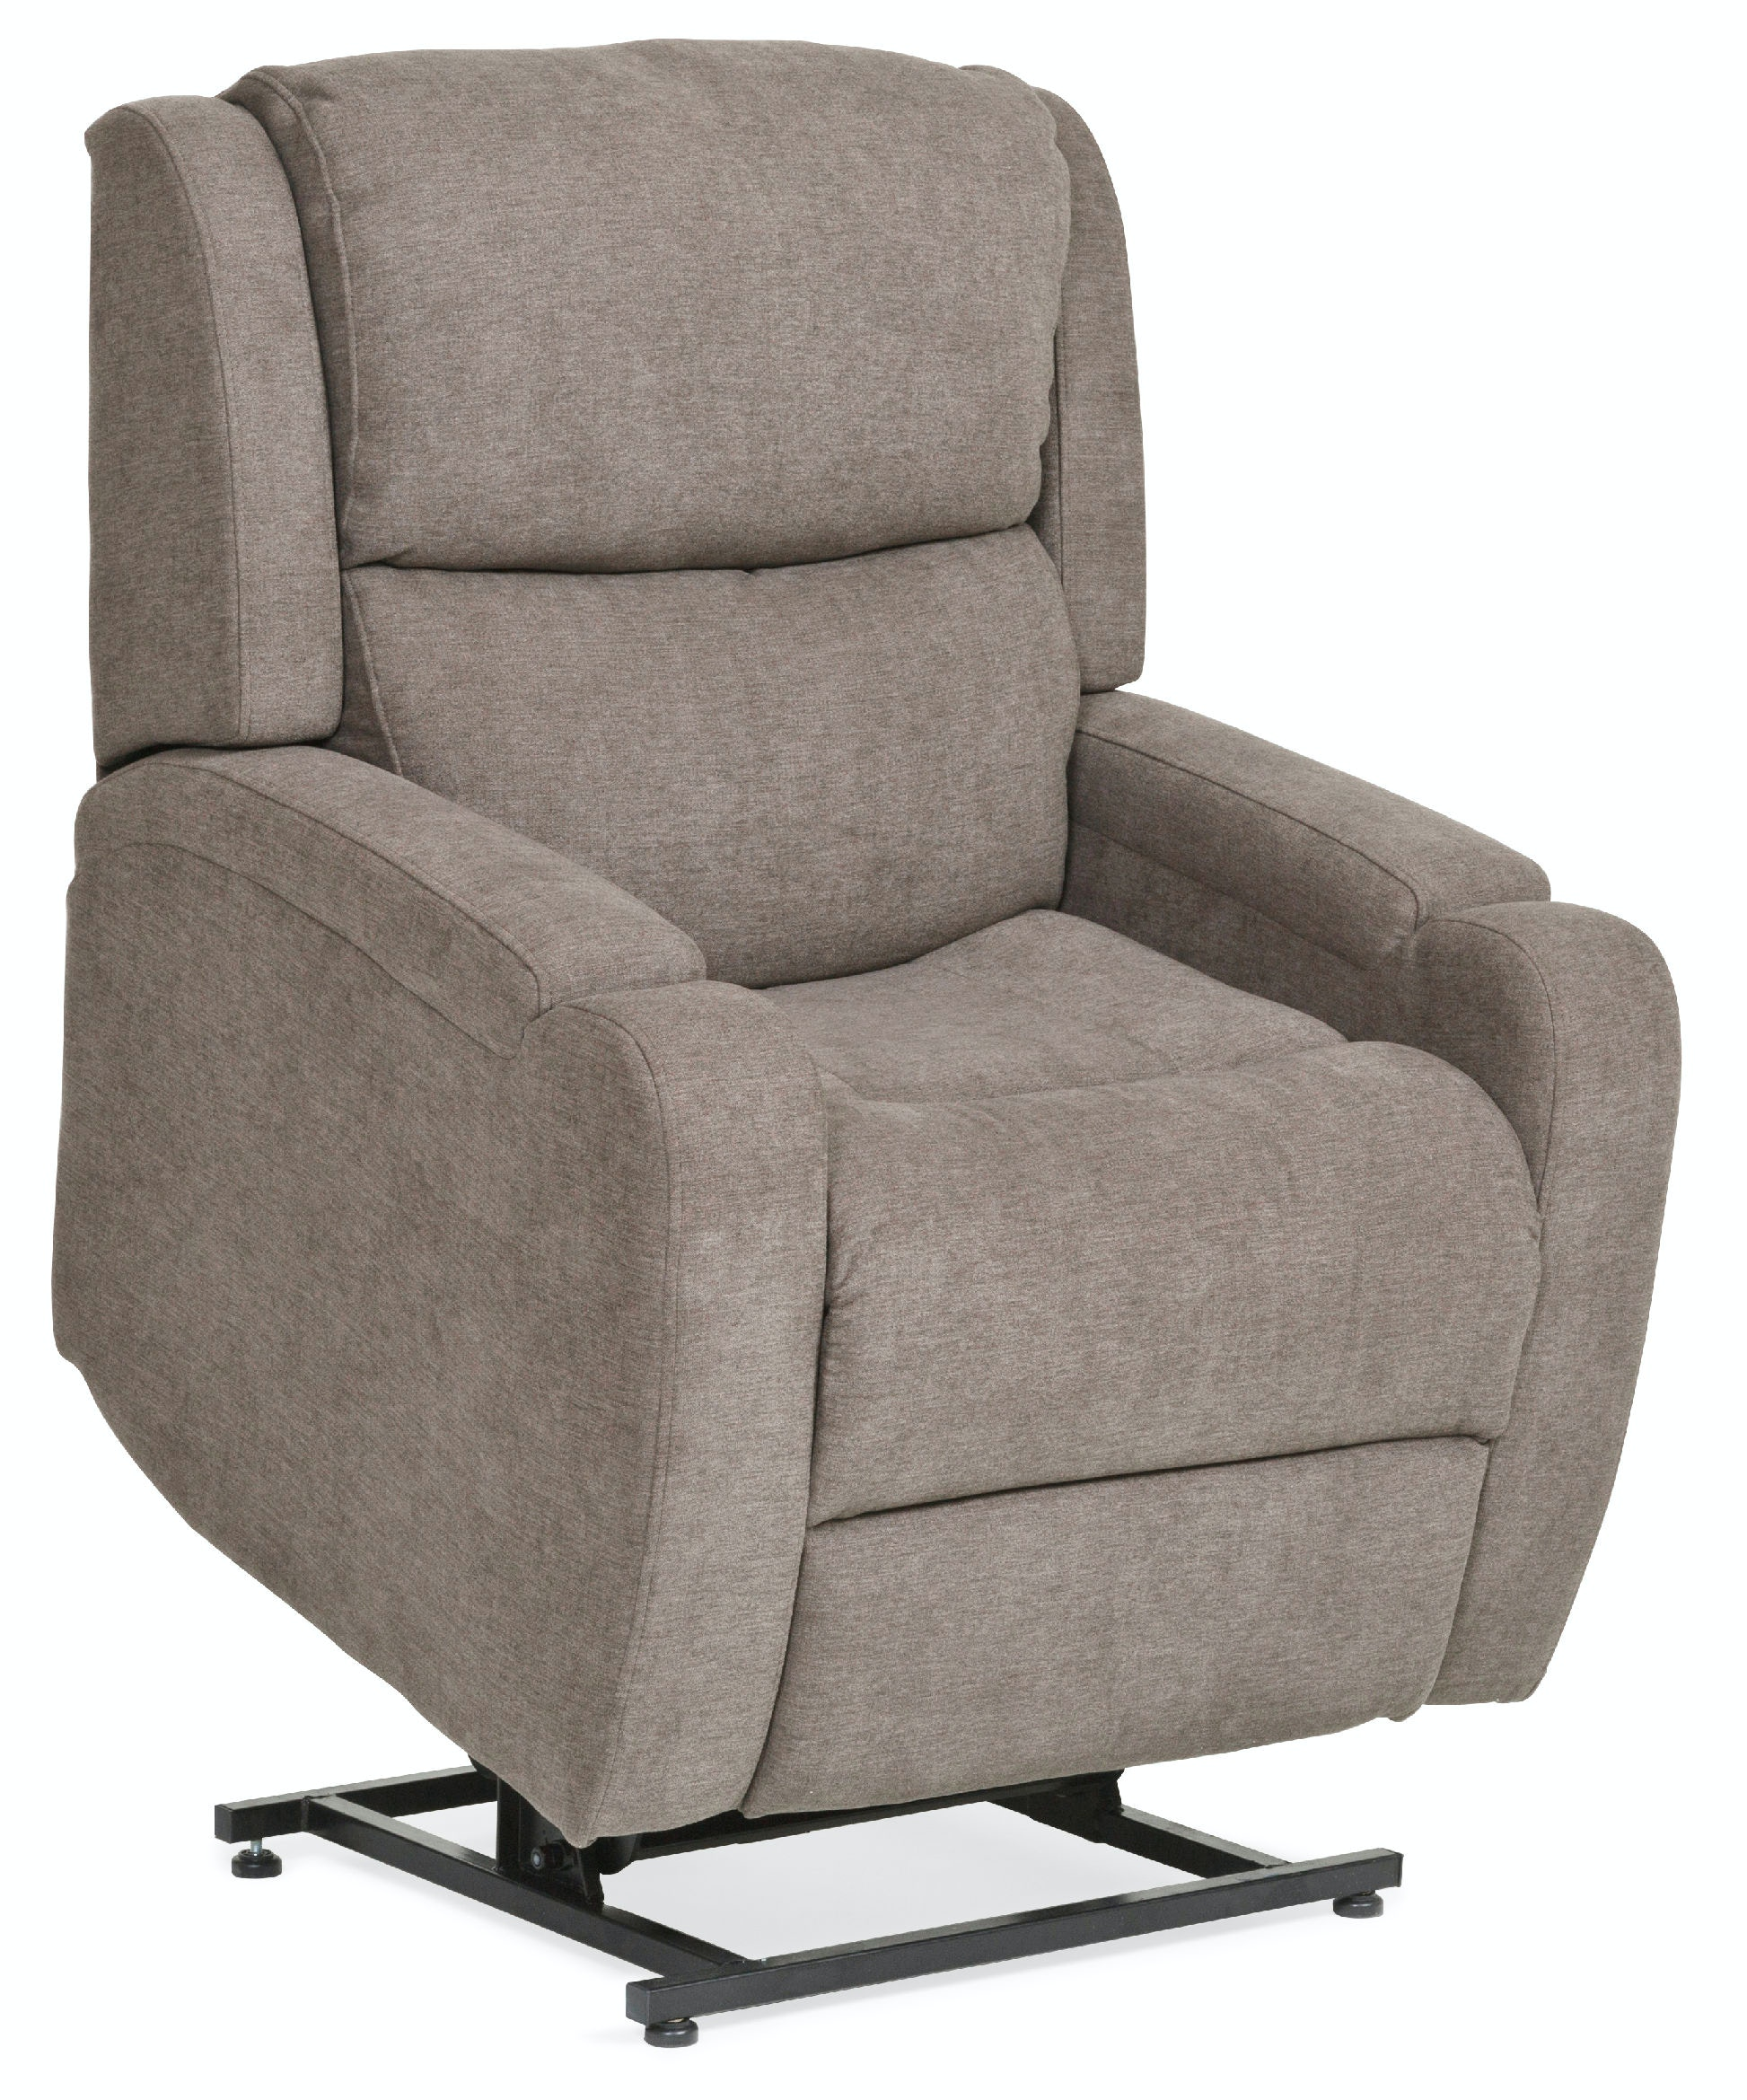 Living Room Melody Lift Chair Recliner